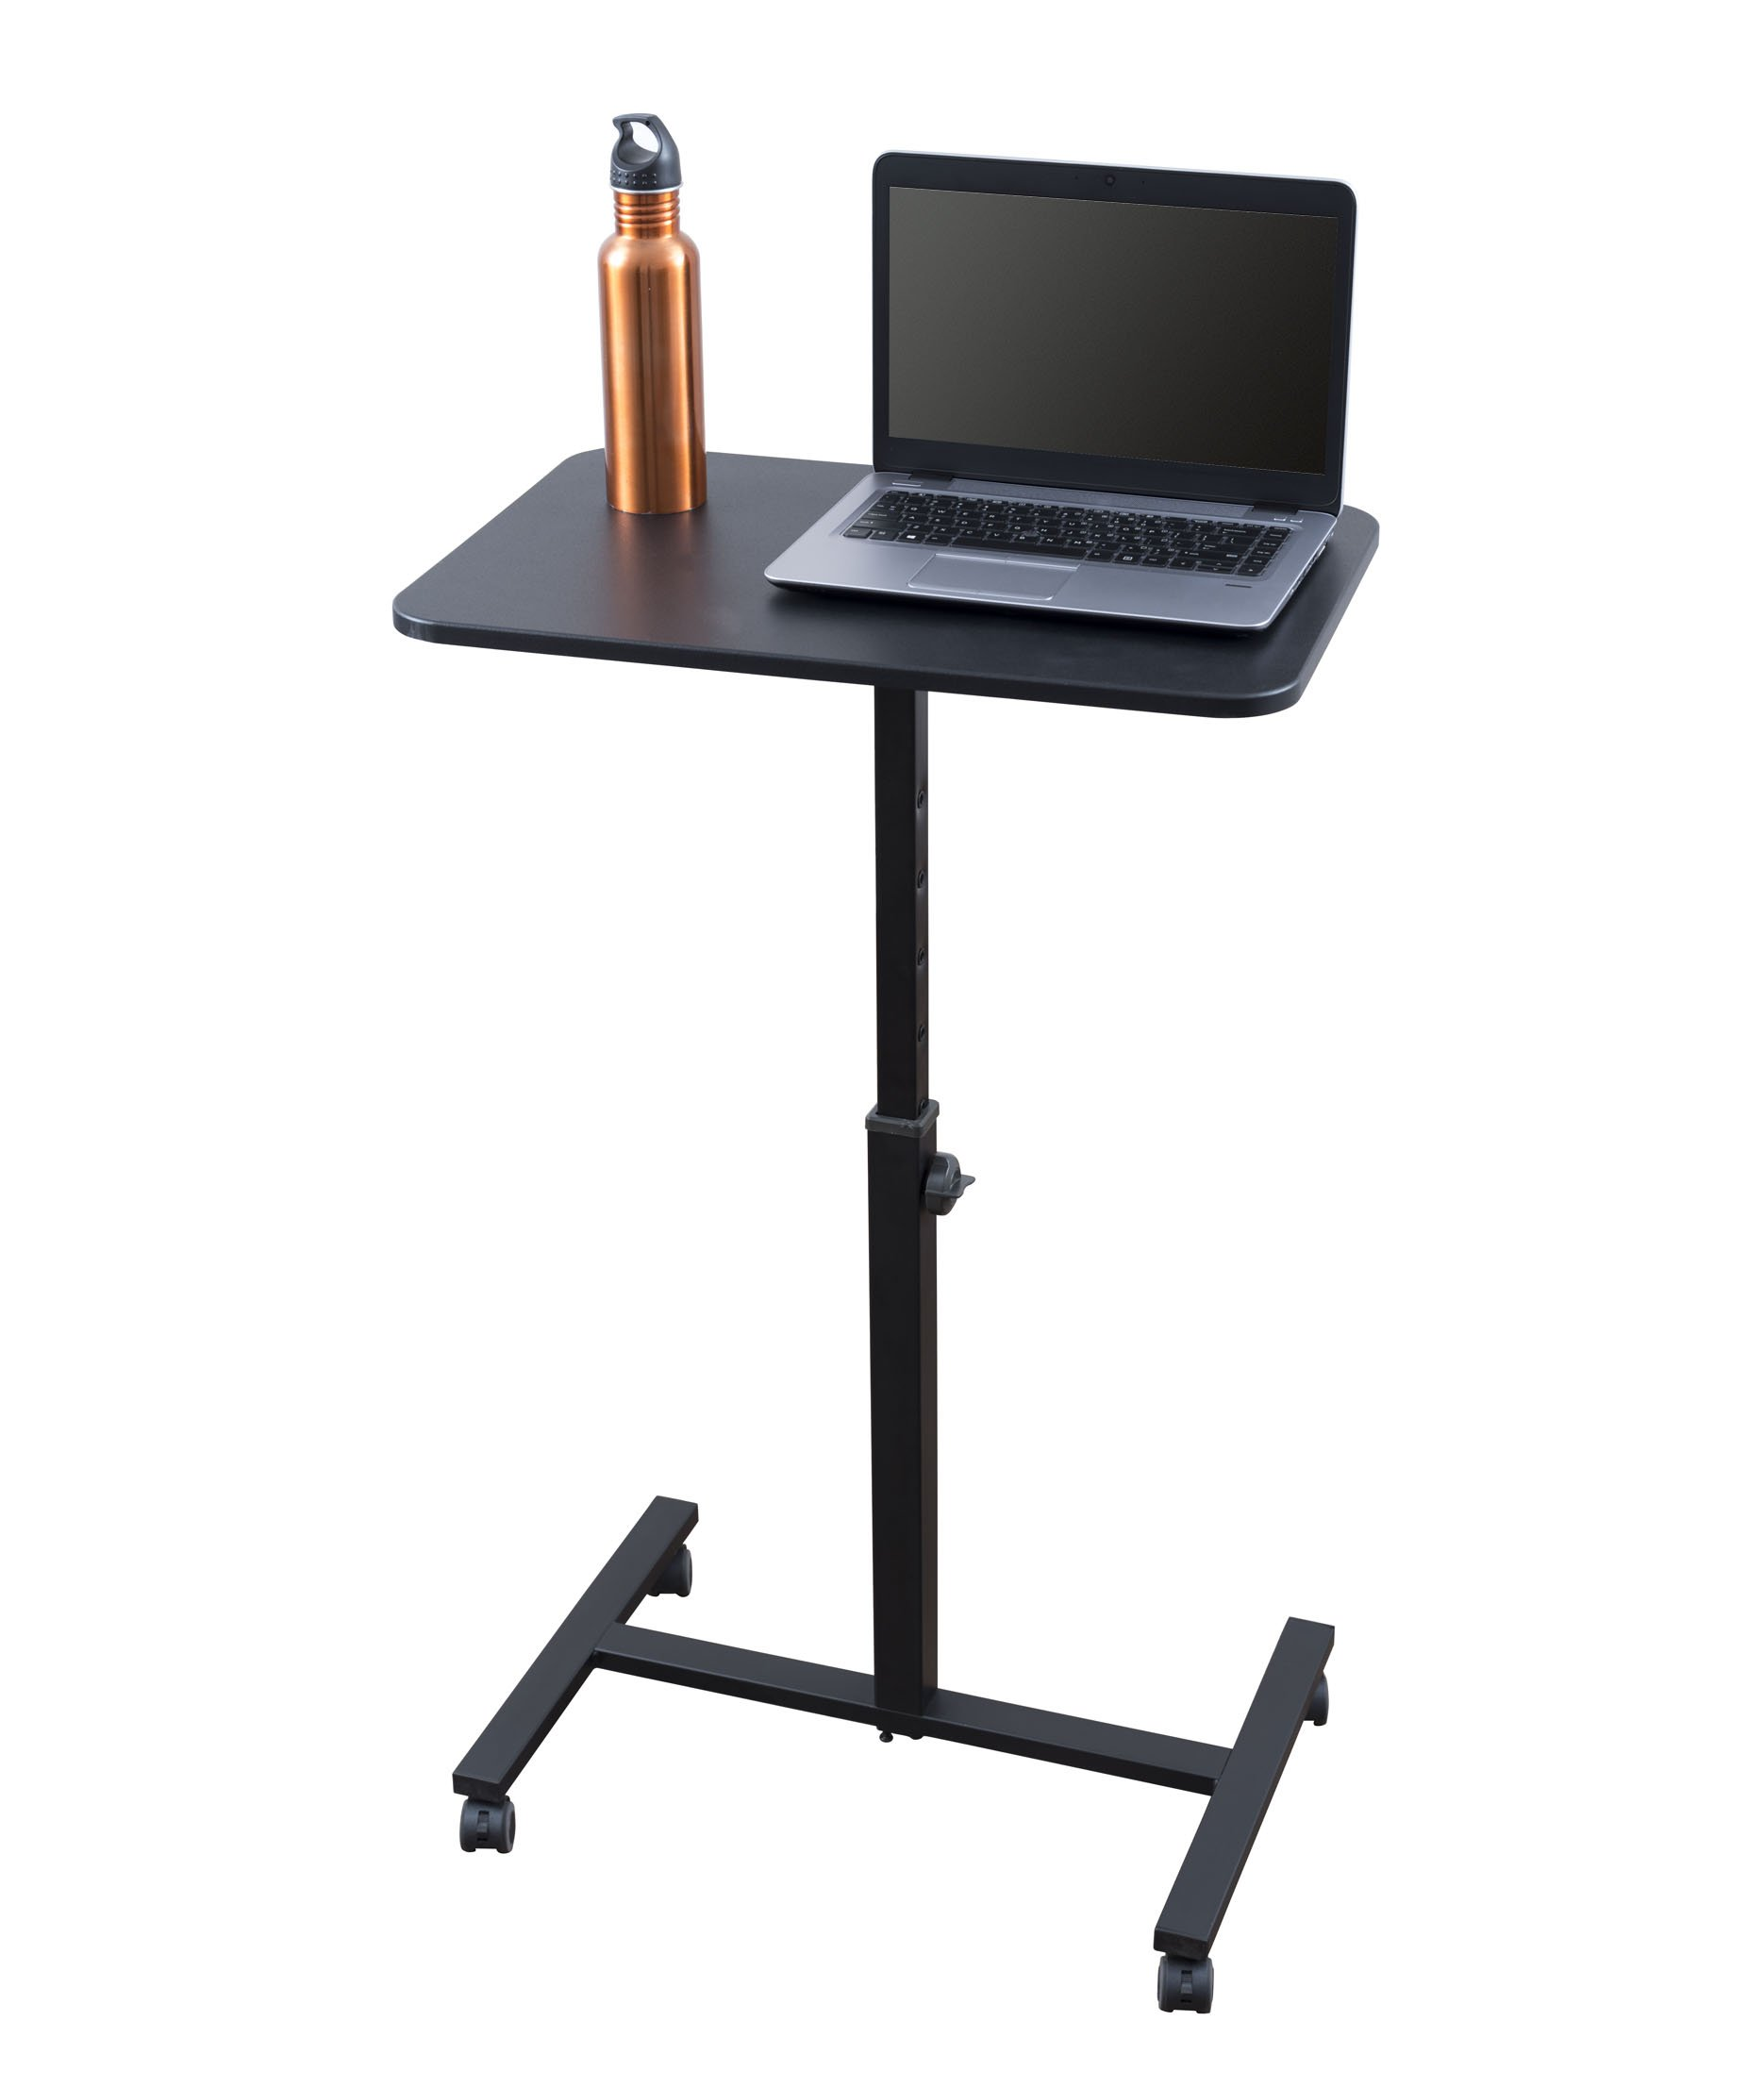 "Single Column Standing Desk | Laptop Stand - A Compact, Cost-Effective Rolling Workstation That Also Works Great as a Lectern/Podium (24"") (Black)"